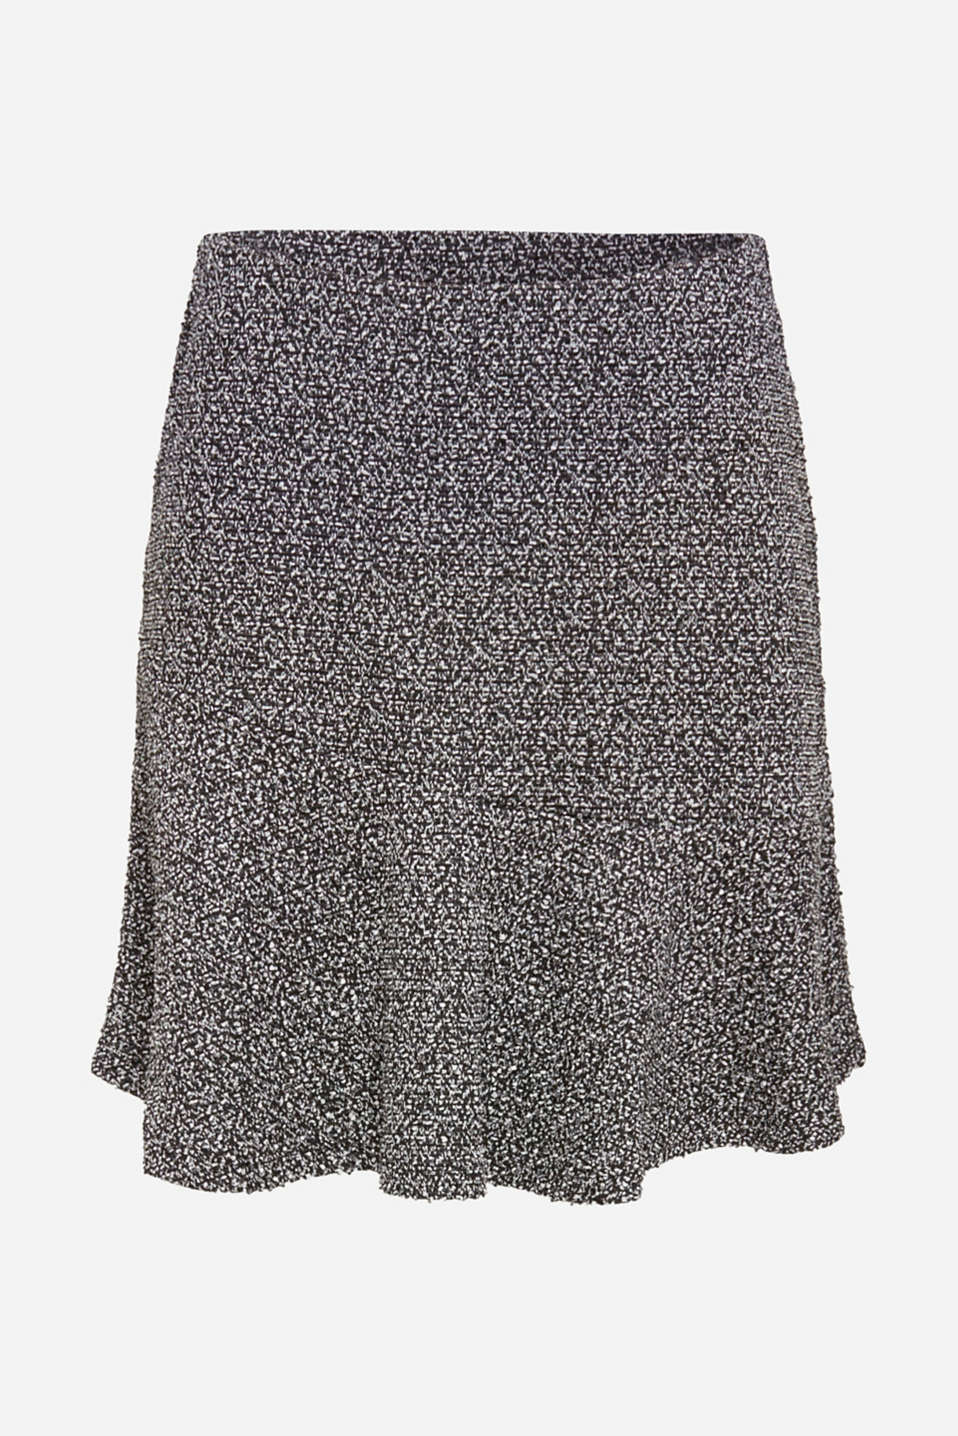 Stretch jersey skirt with a popcorn texture, BLACK, detail image number 5